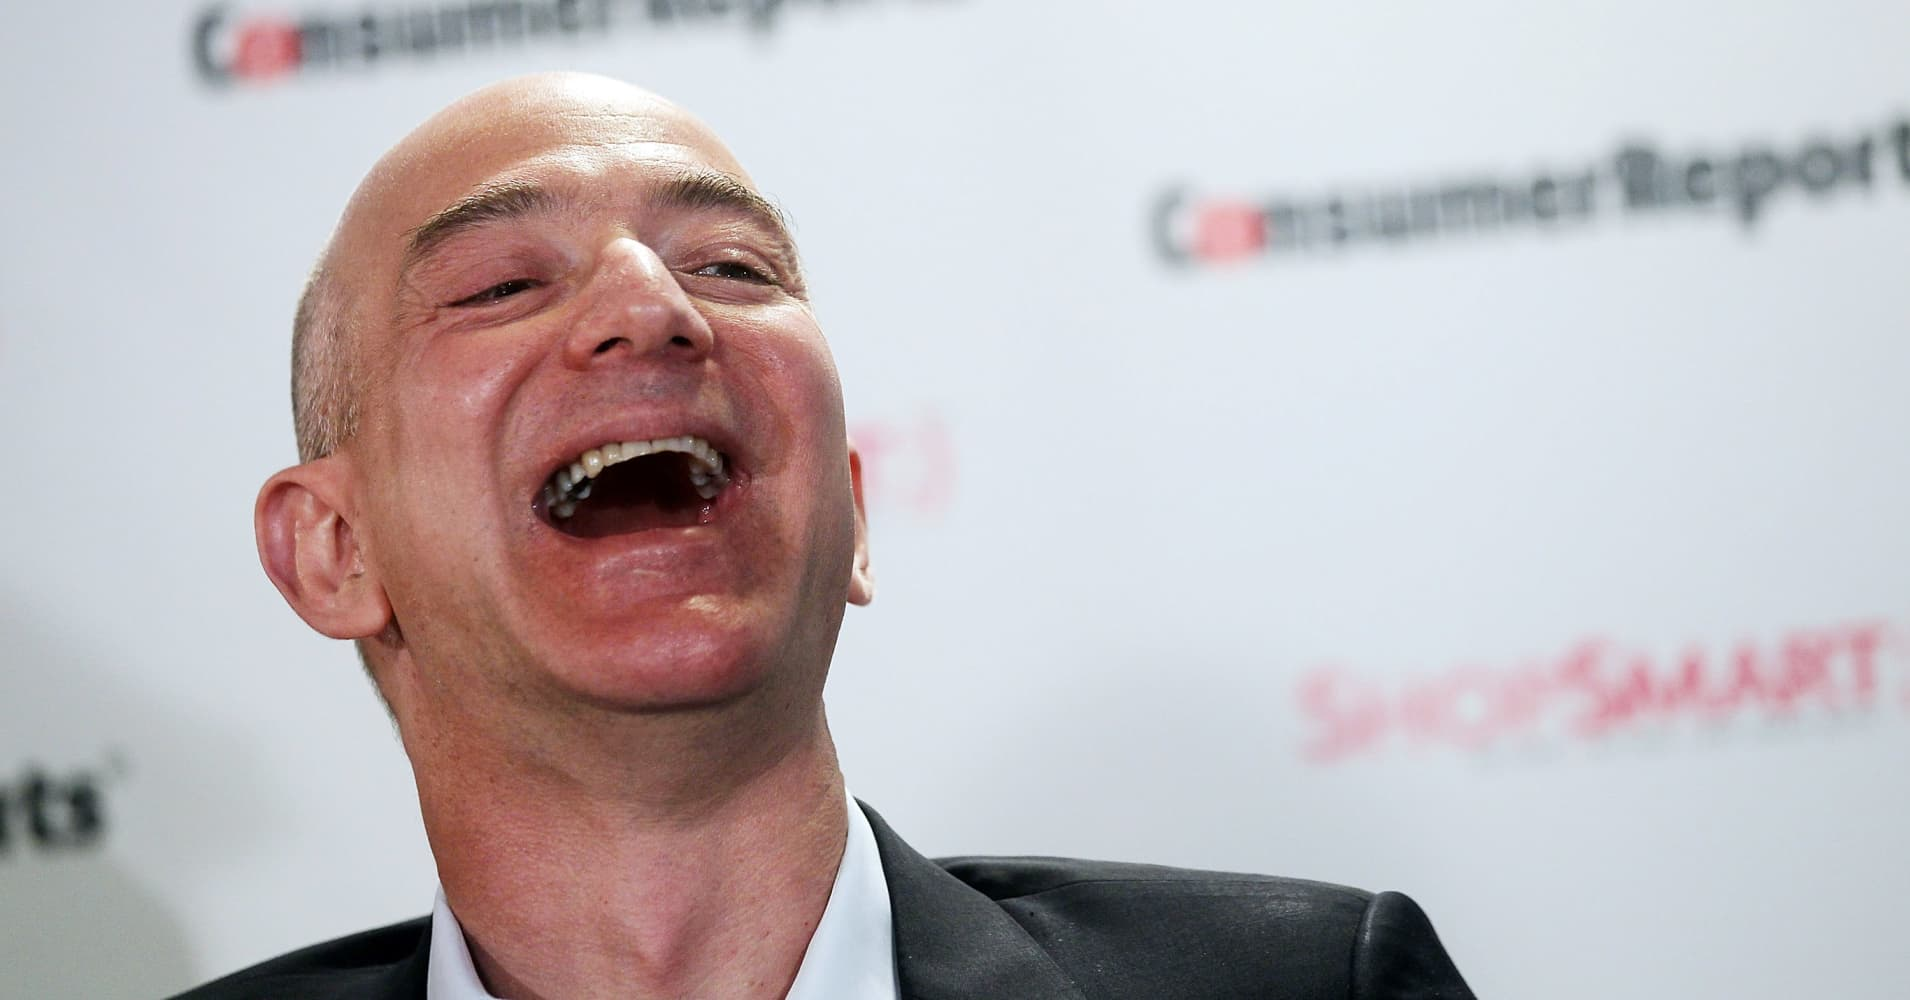 Bezos Amazon Team Wins Guinness World Record In Chicken Wing Eating